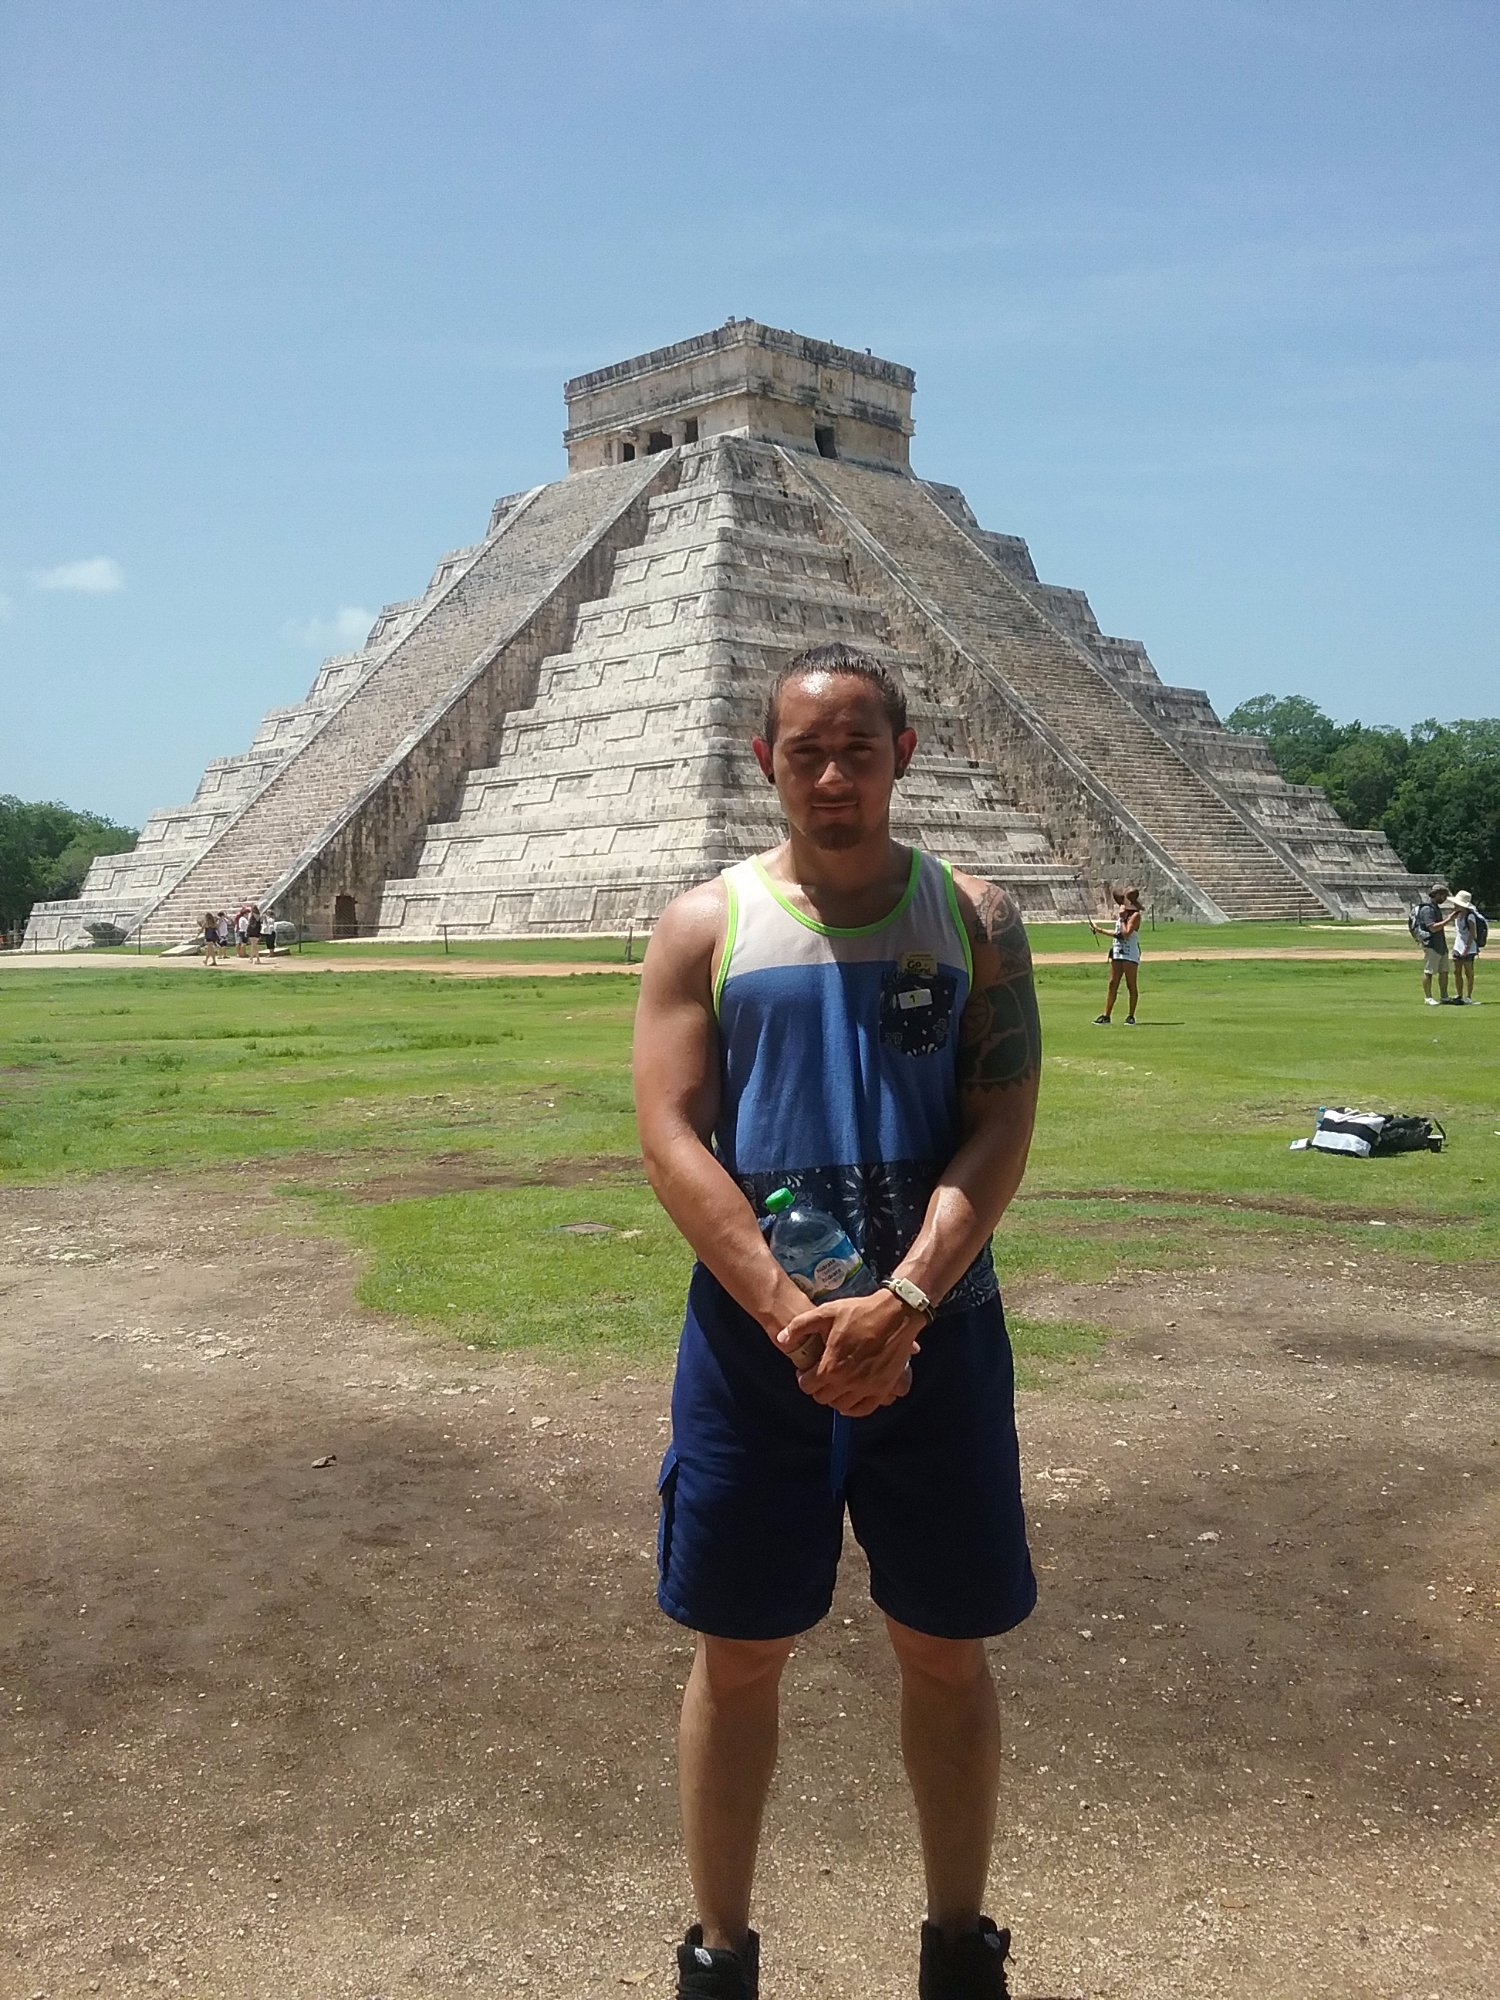 The Mayan Temple at Chechenitza